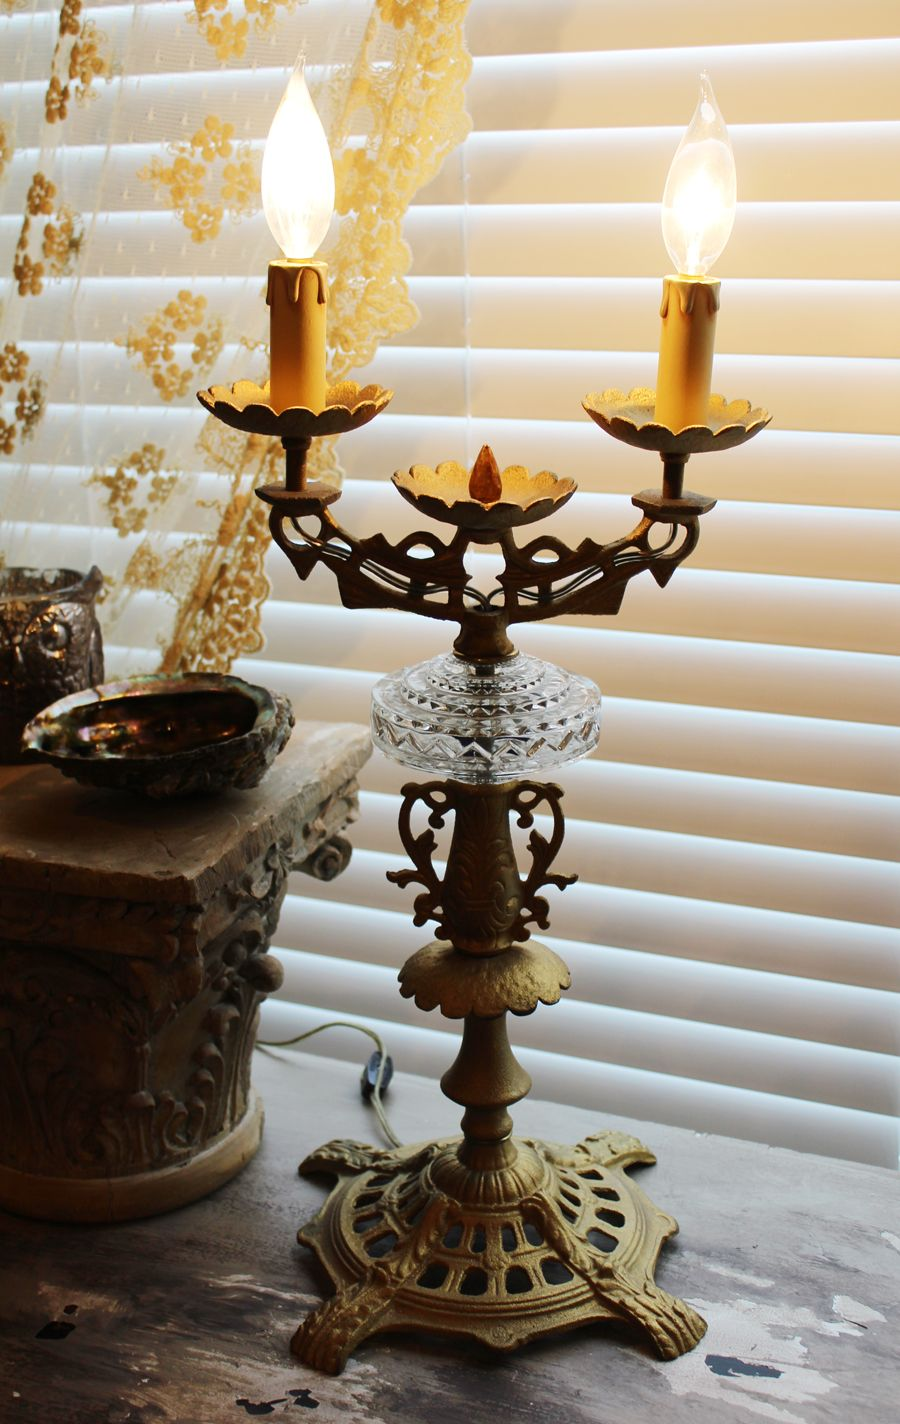 Antique 2 arm electrical candelabra girandole amdanlar chandeliers mirrors art handbags jewels and eclectic finds for todays chic home mozeypictures Gallery